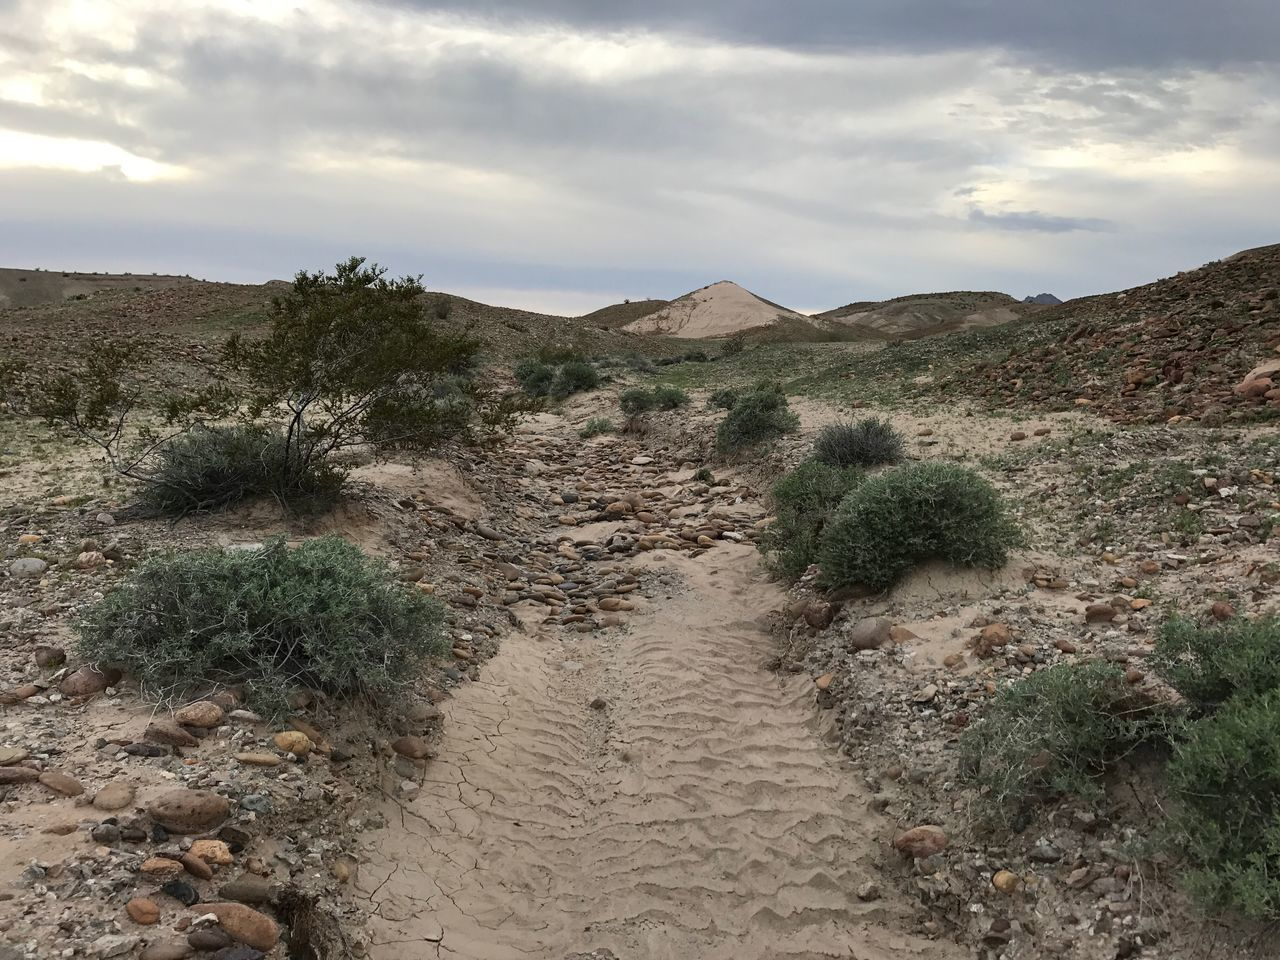 Nature Desert Arid Climate Landscape Outdoors Tranquil Scene Tranquility Sky Beauty In Nature Day Scenics Cloud - Sky Remote Sand Growth Plant Sand Dune No People No Filter, No Edit, Just Photography Dry Wash Desert Landscape Beauty In Nature